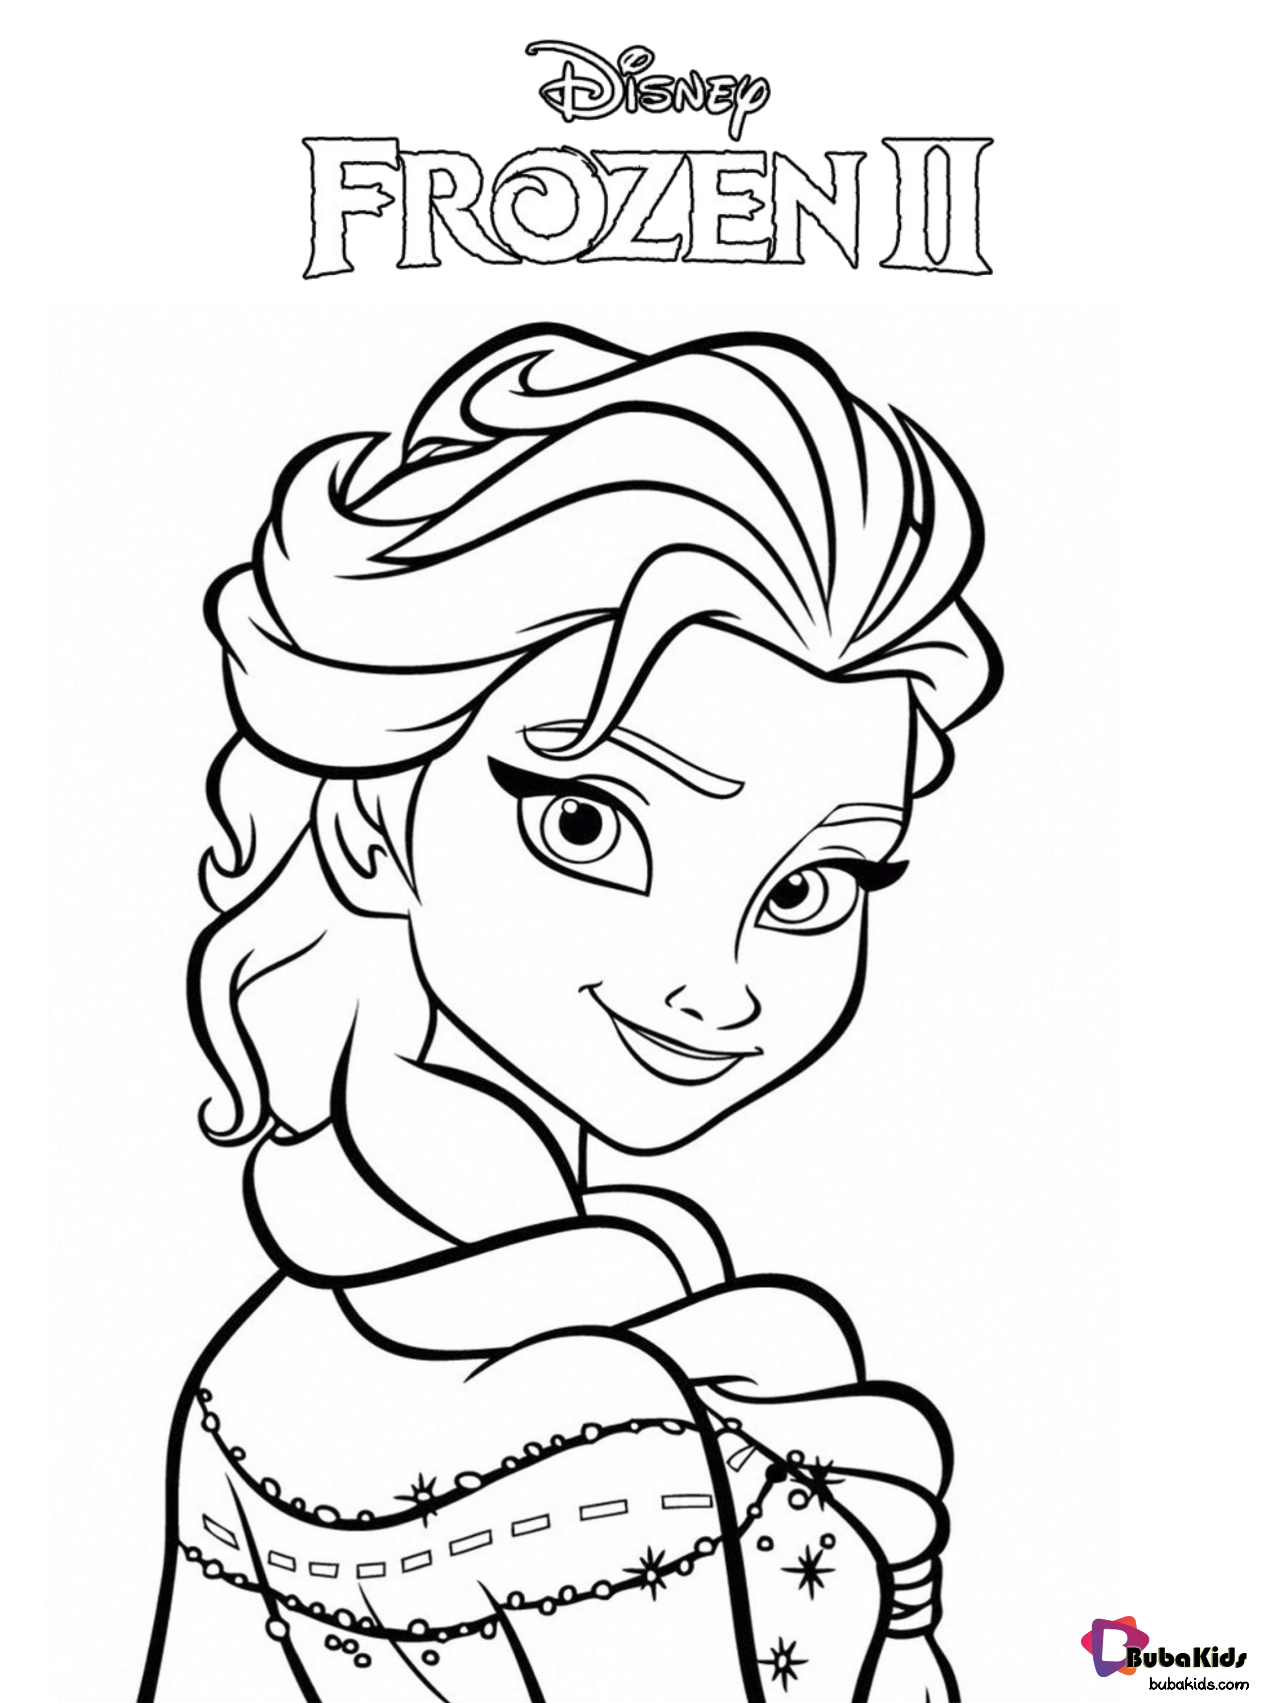 Free Download And Printable Frozen 2 Queen Elsa Coloring Page Elsa Frozen 2 Queen Elsa Elsa Coloring Pages Free Disney Coloring Pages Frozen Coloring Pages